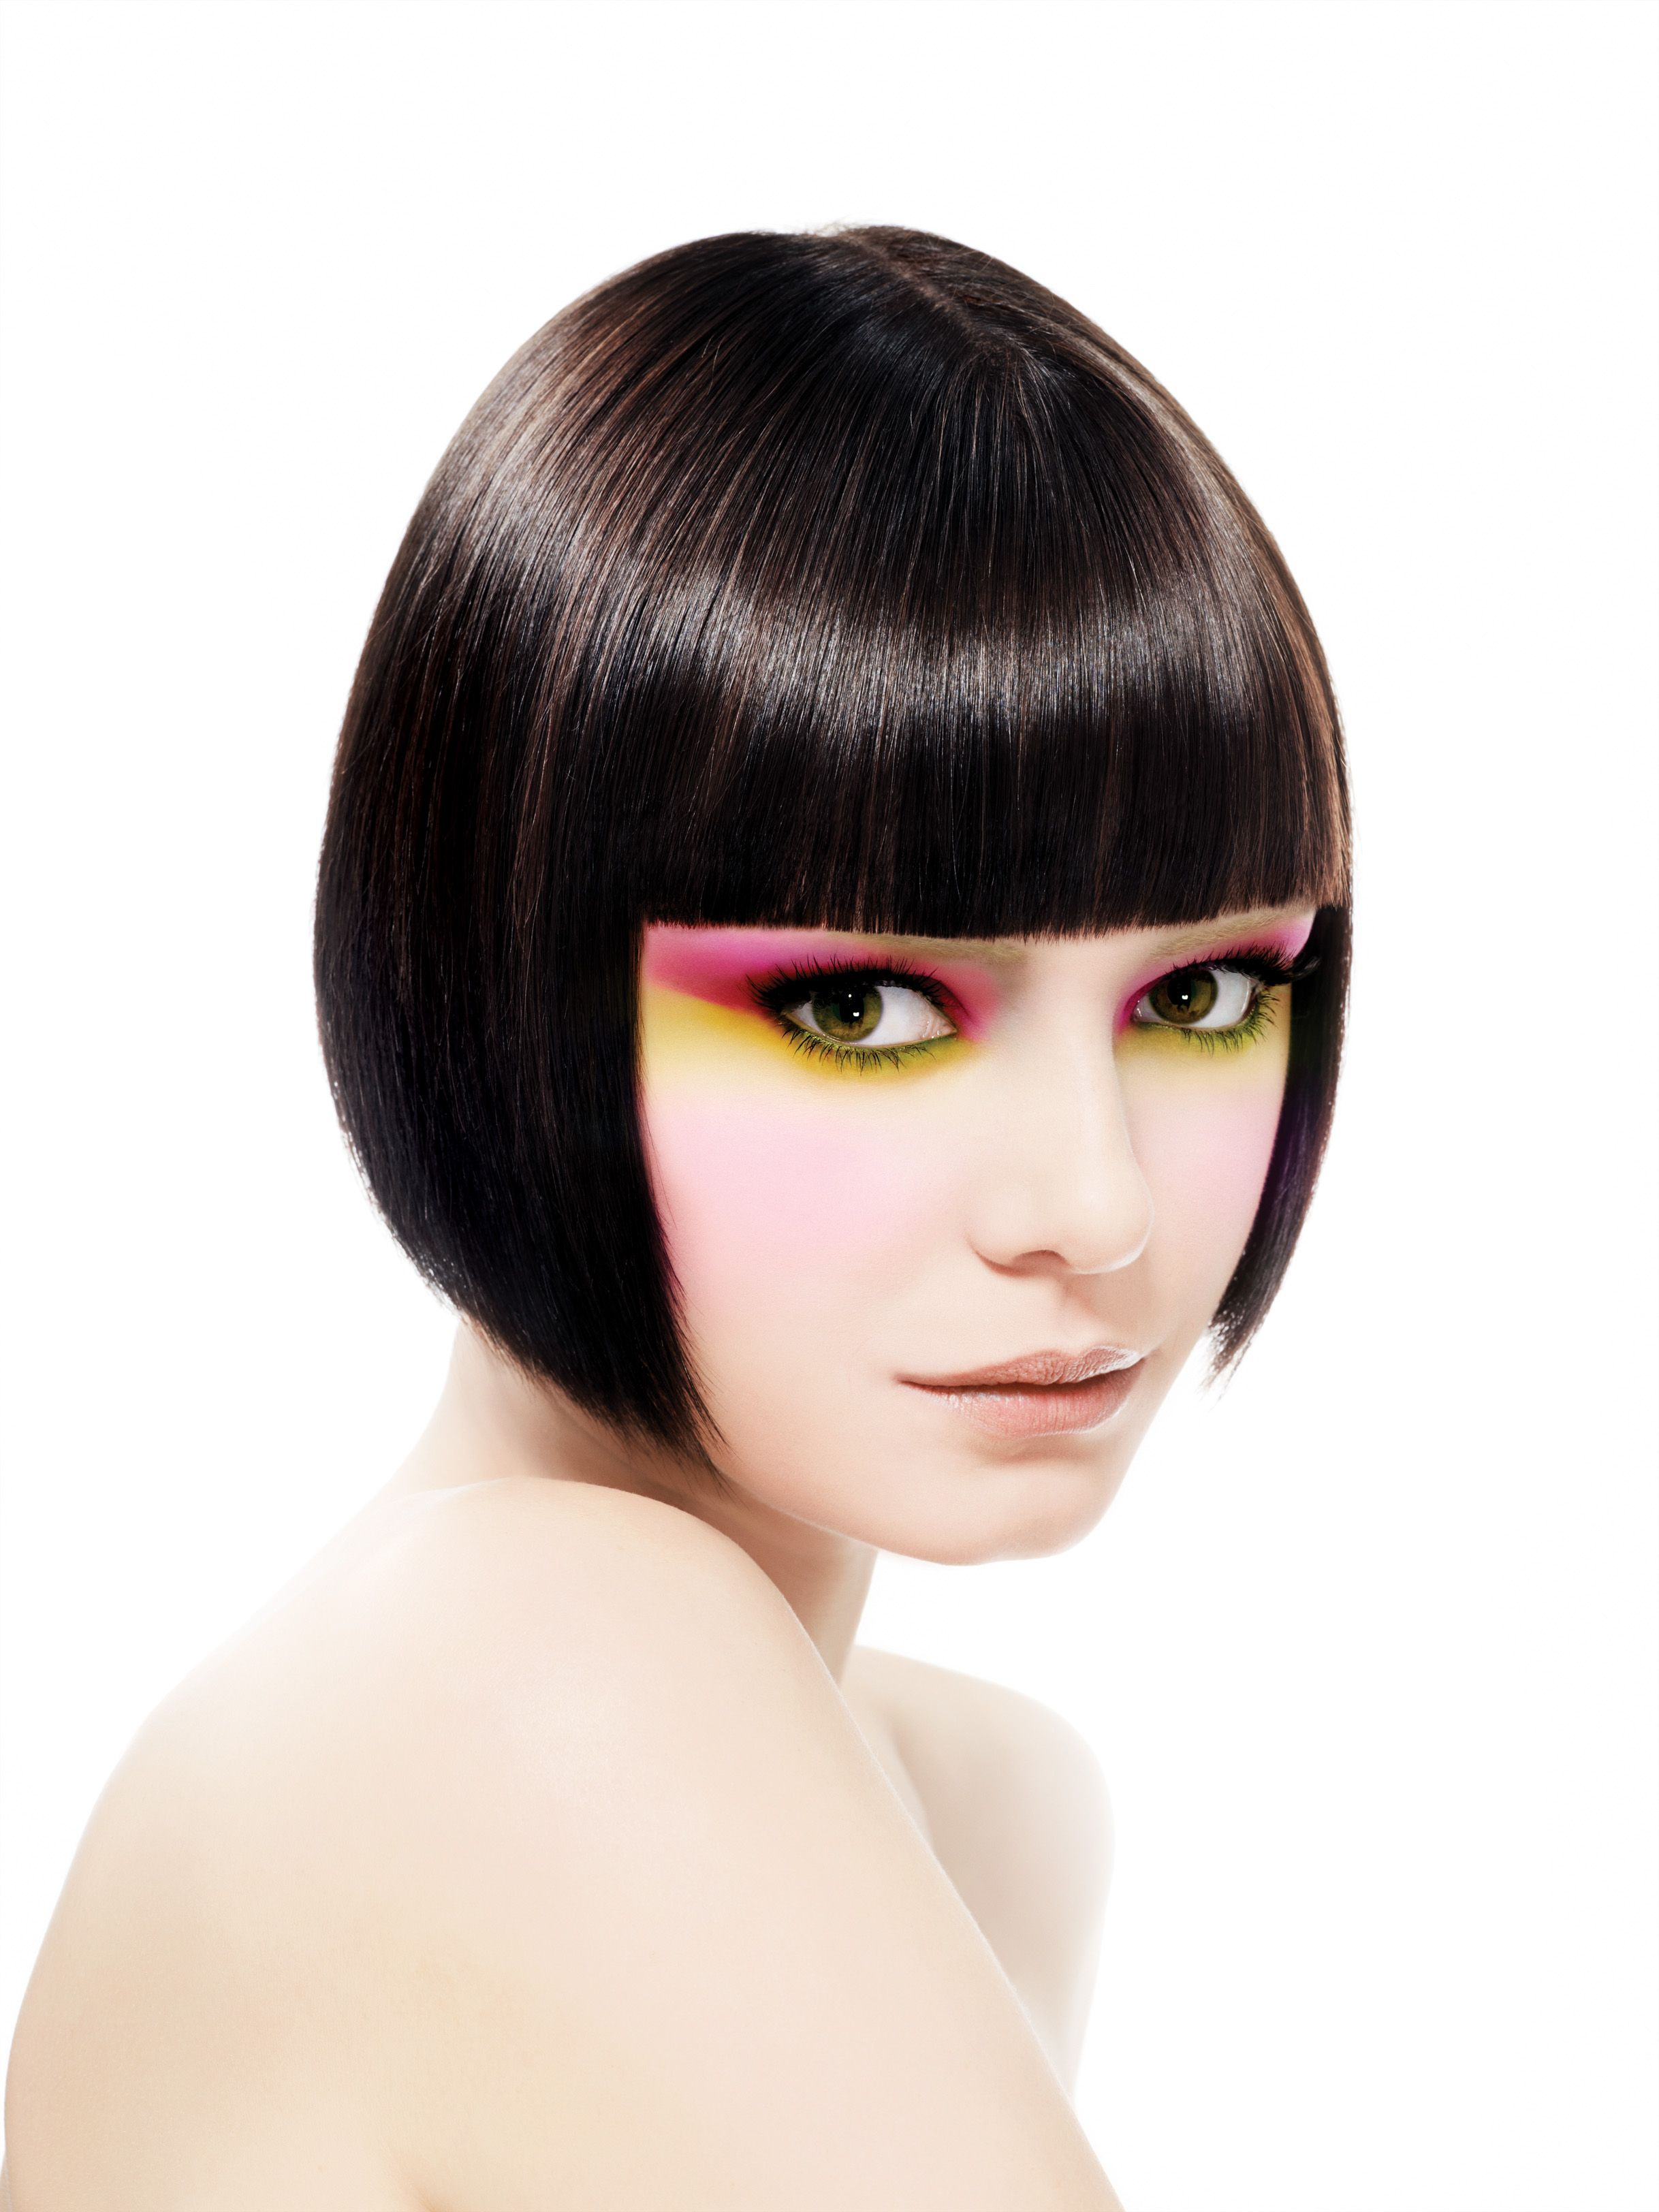 Shorthair paulmitchell brunette fringes pinterest paul